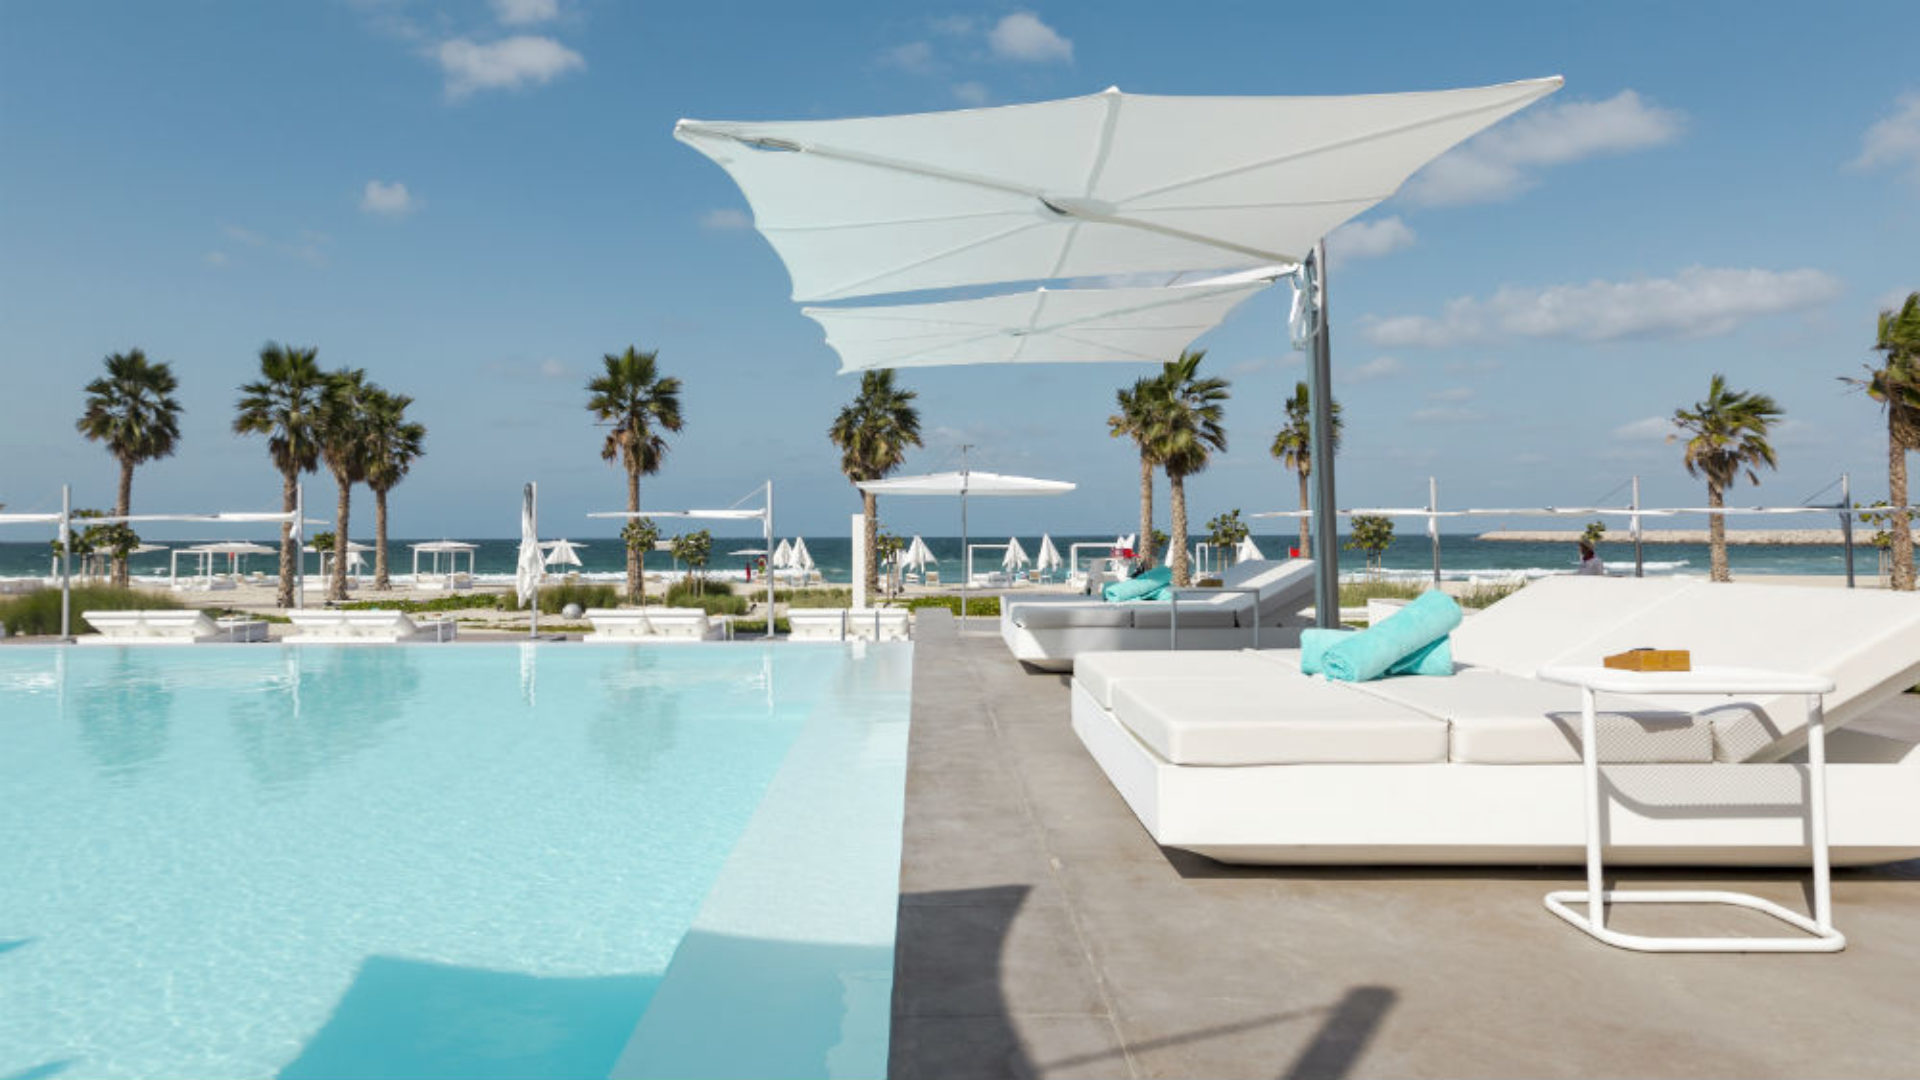 Main pool and sun loungers at Nikki Beach Resort & Spa